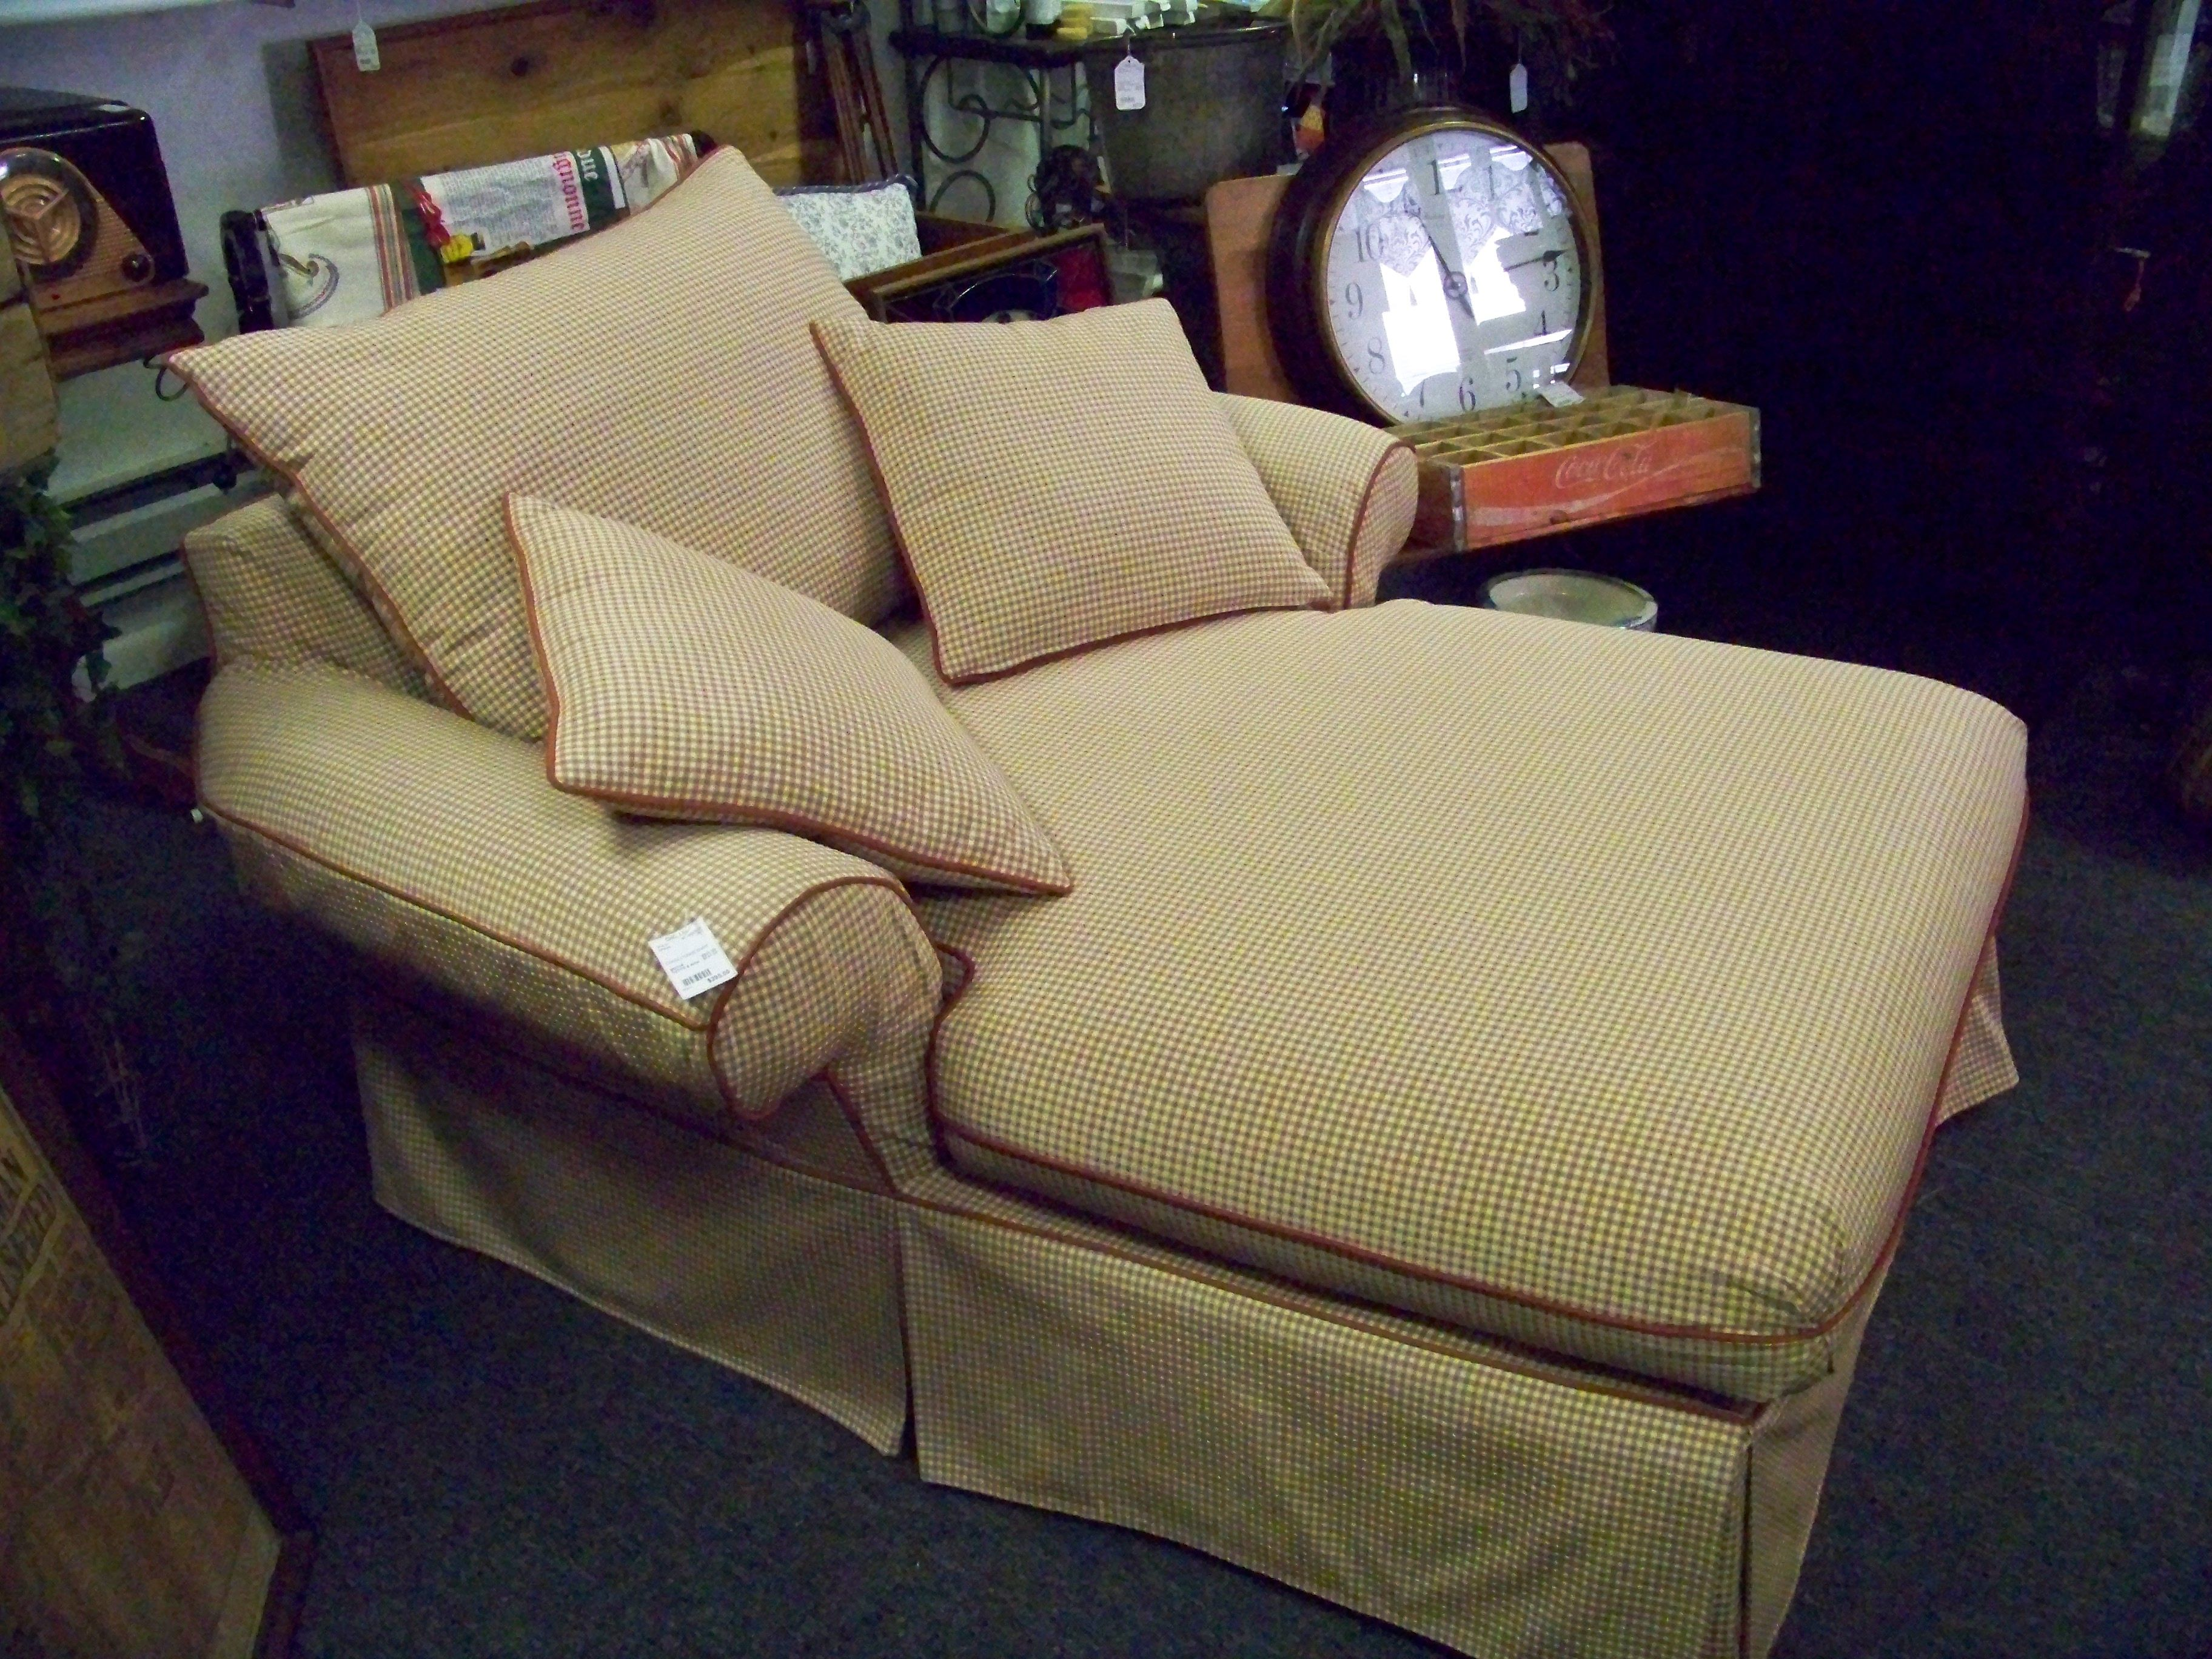 Sold chase lounge chair consignment booknook